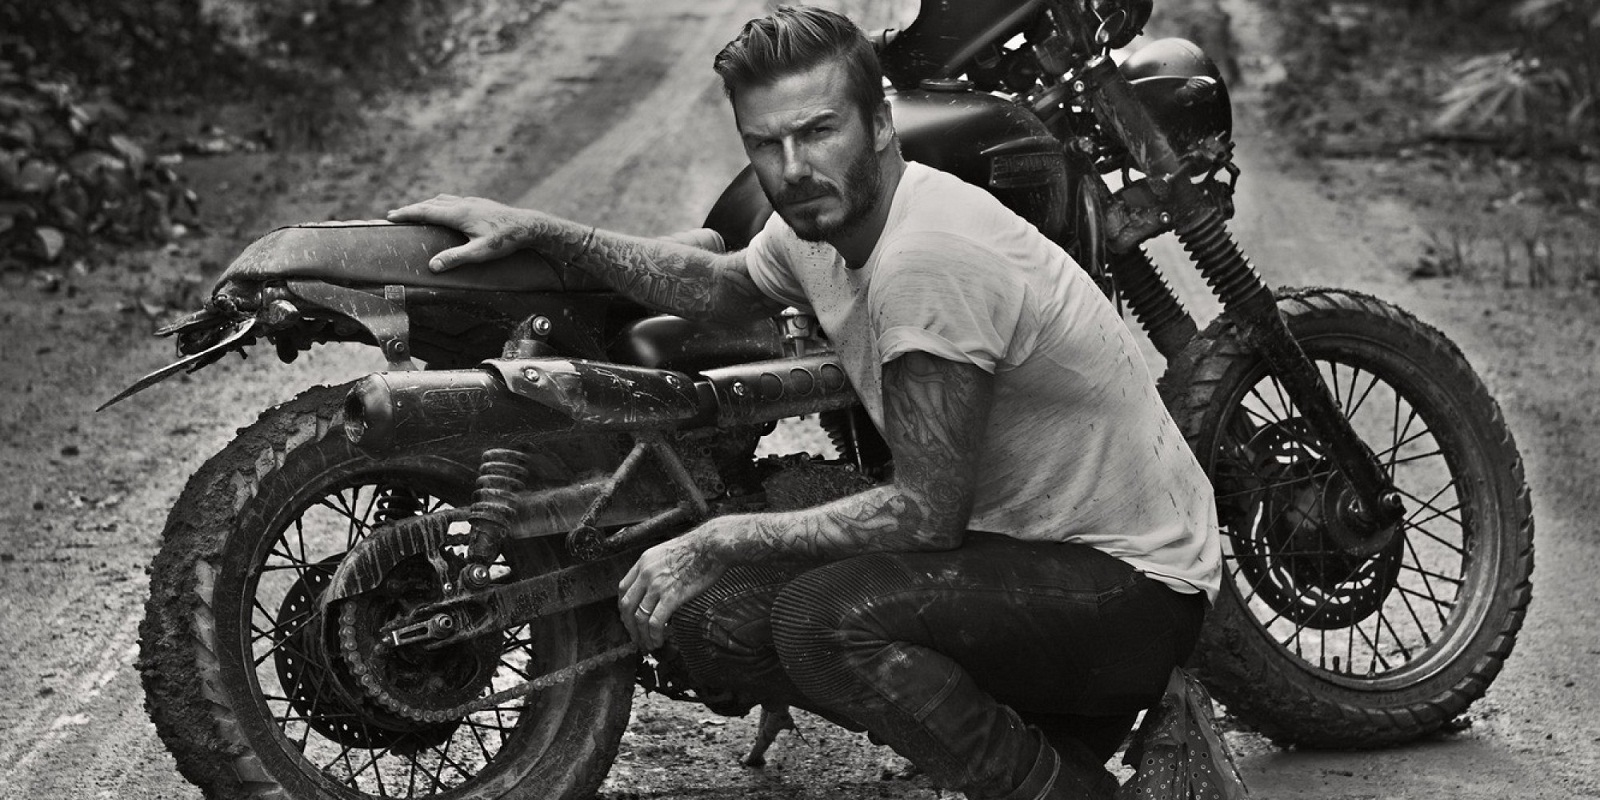 Programme Name: David Beckham Into The Unknown - TX: 09/06/2014 - Episode: n/a (No. n/a) - Picture Shows: PLEASE CREDIT ANTHONY MANDLER **No billboard or advertising use** David Beckham in the Amazon Rainforest David Beckham - (C) Anthony Mandler - Photographer: Anthony Mandler